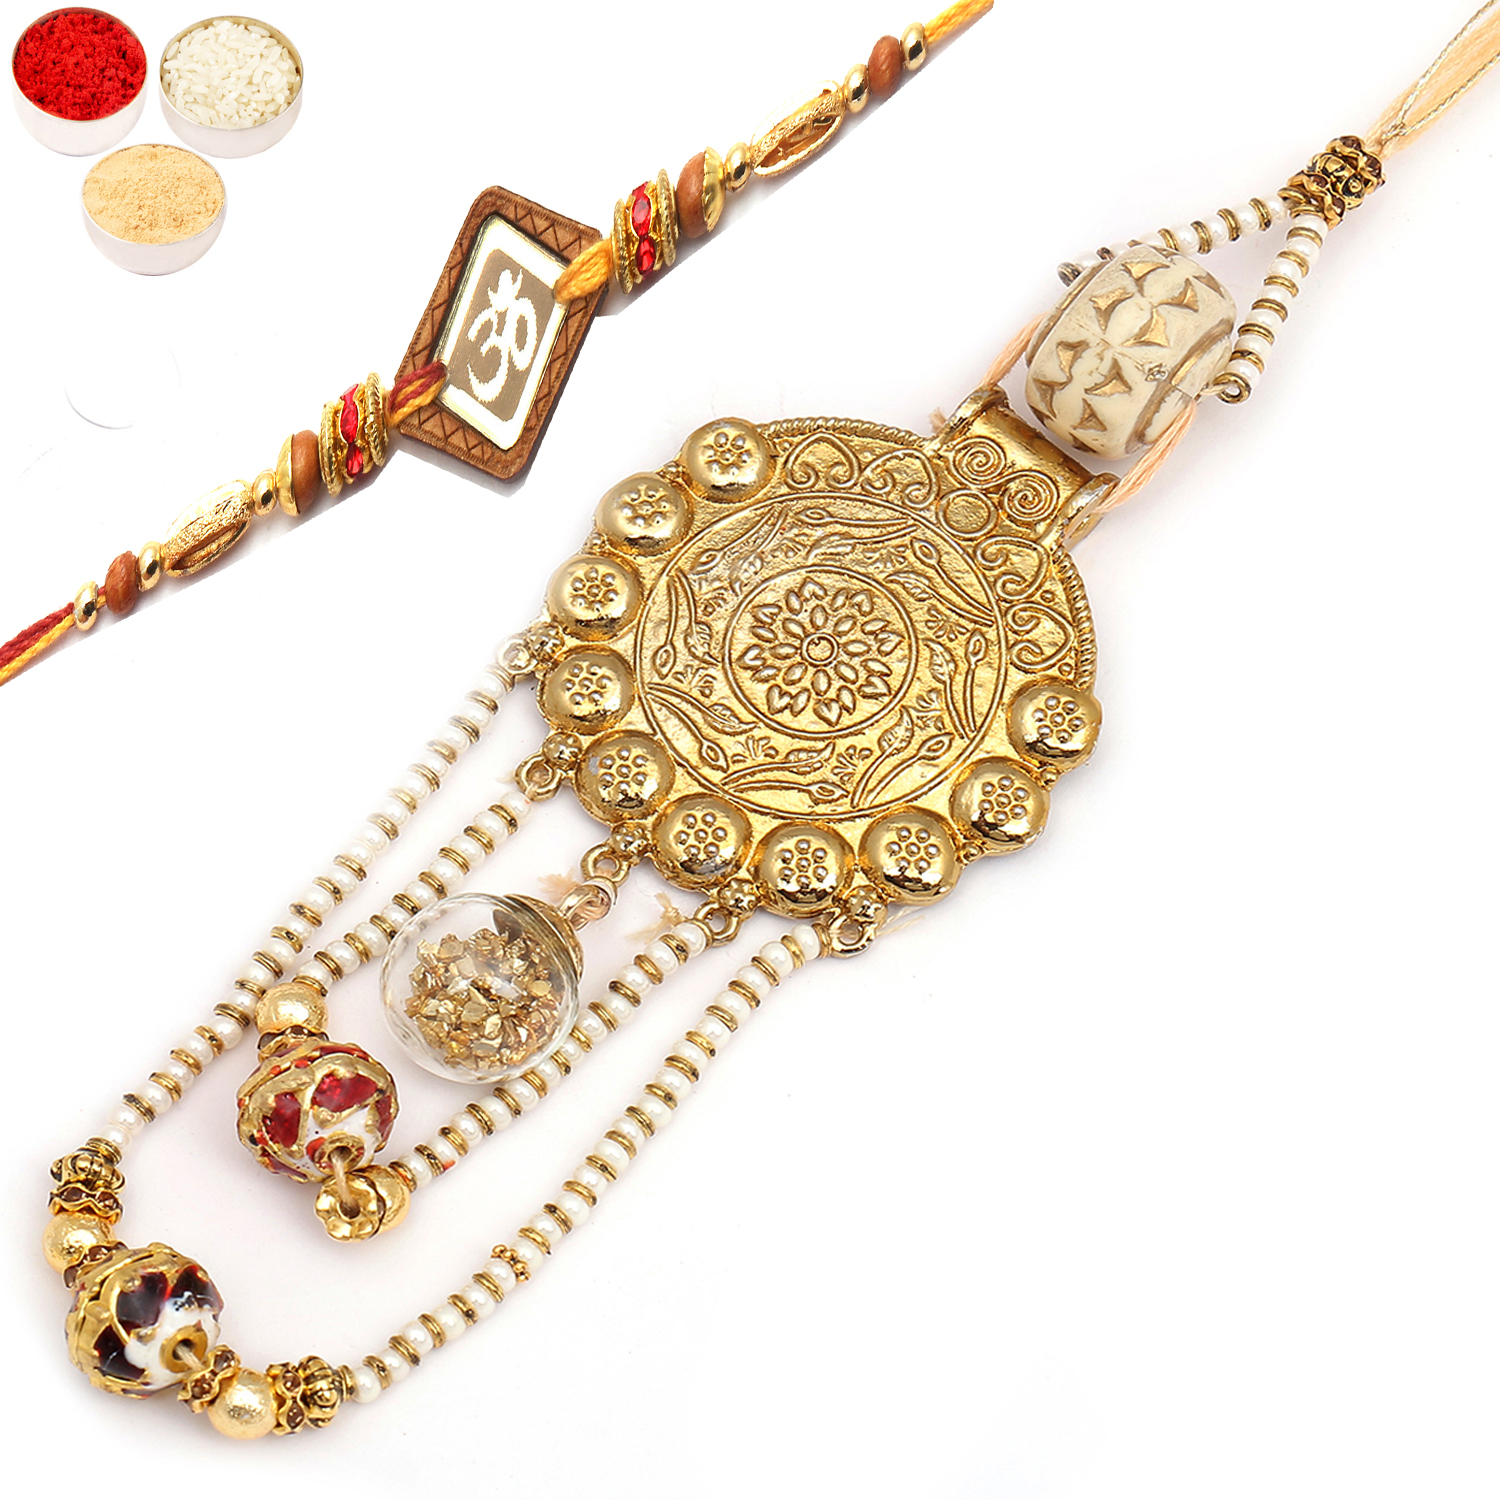 The Royal Quartz Bhaiya Bhabhi Rakhi